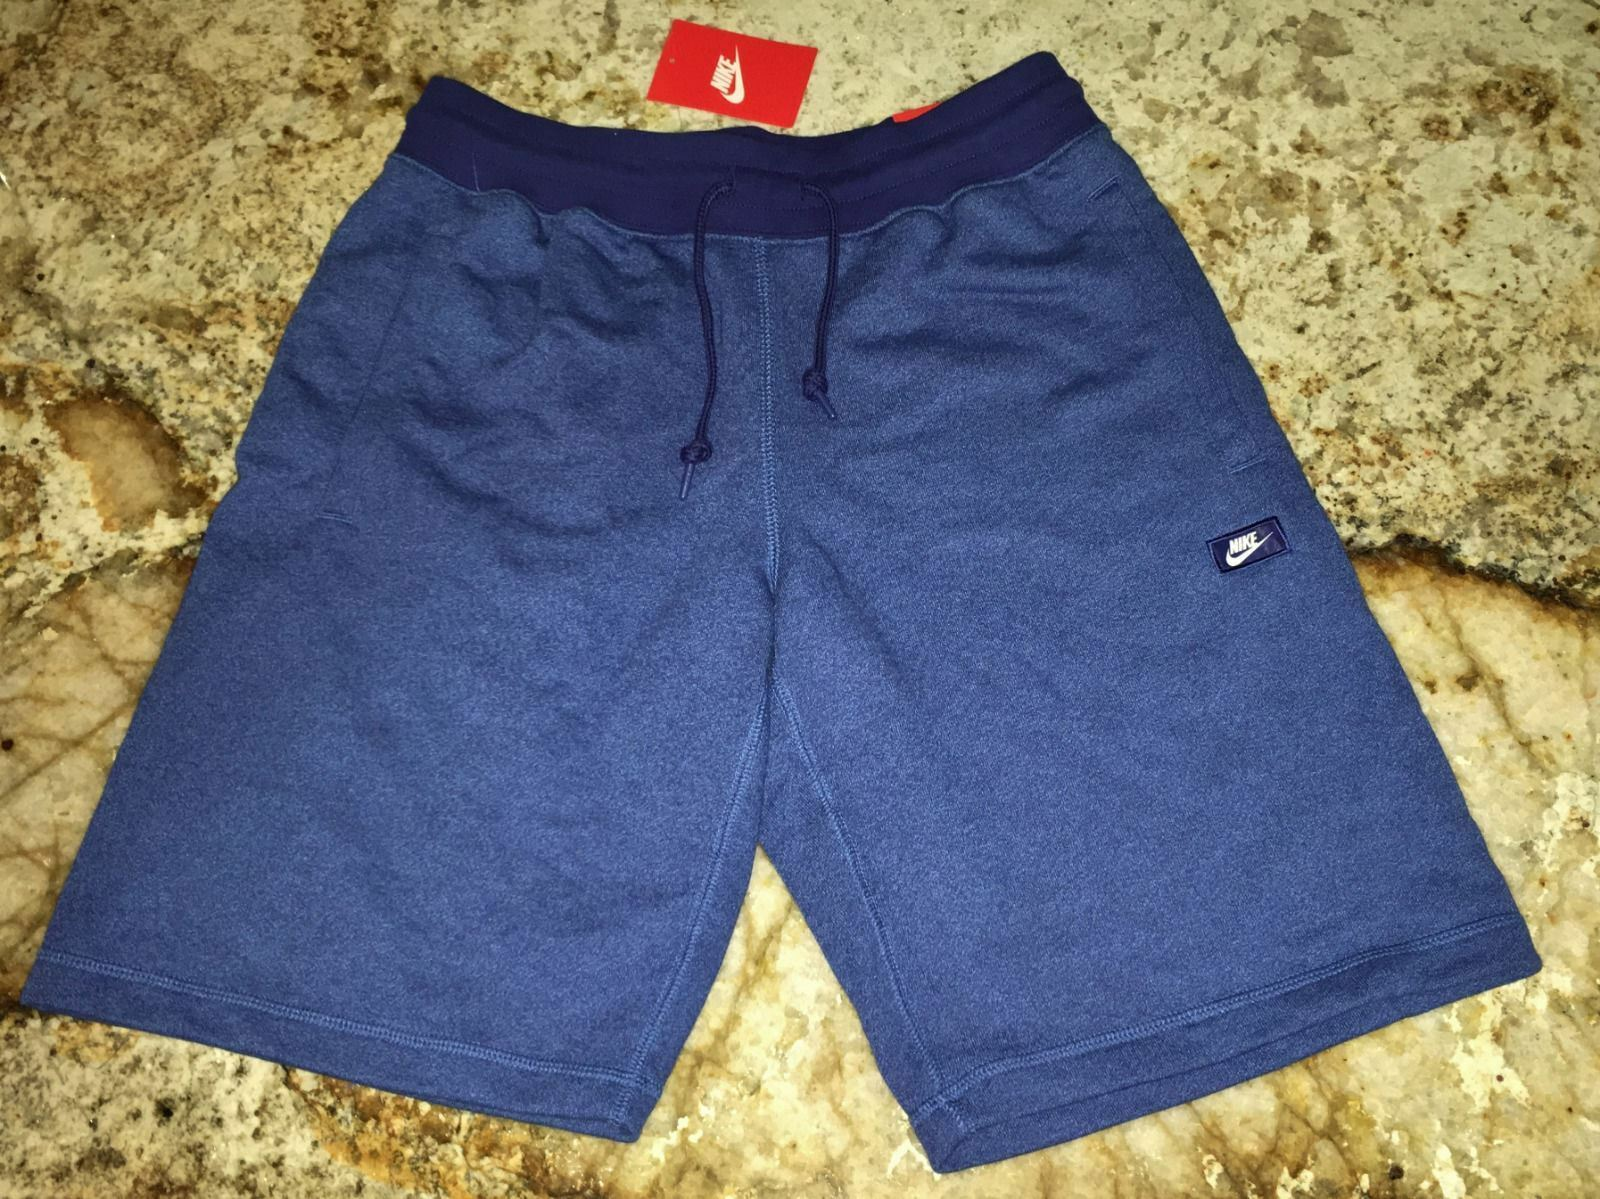 NIKE Sportswear AW77 Alumni shoesbox French Terry Shorts bluee Heather Mens S XL